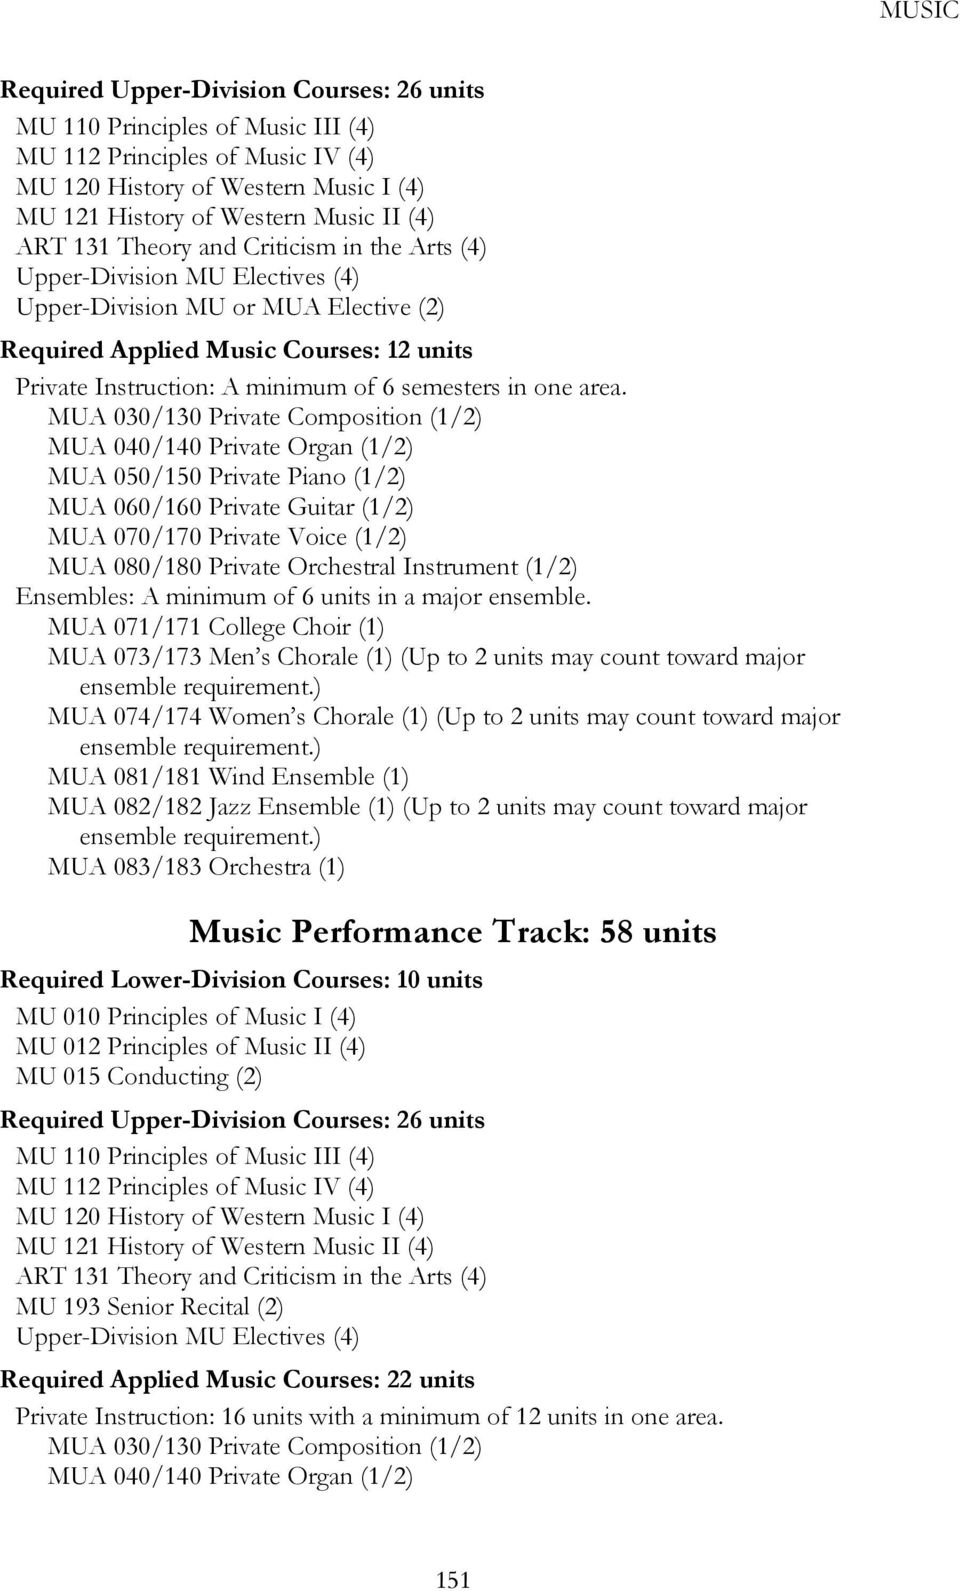 MUA 082/182 Jazz Ensemble (1) (Up to 2 units may count toward major Music Performance Track: 58 units Required Lower-Division Courses: 10 units MU 015 Conducting (2) Required Upper-Division Courses: